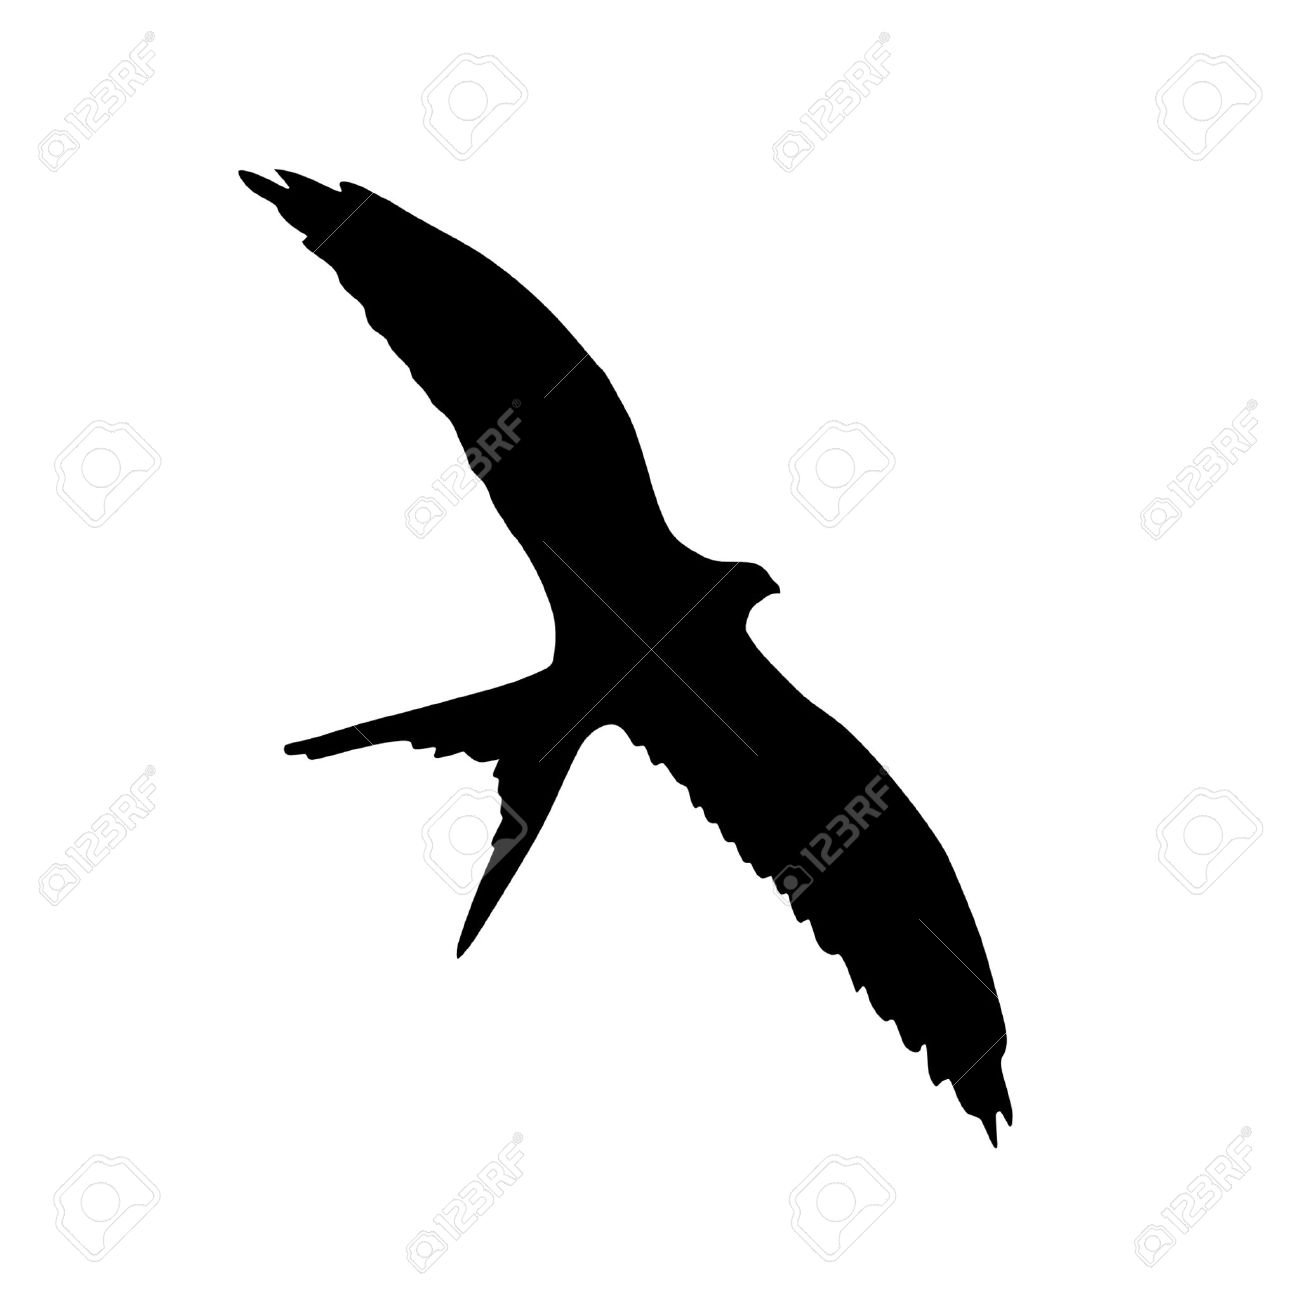 Illustration in style of black silhouette of flying swallow Stock Vector - 11611384